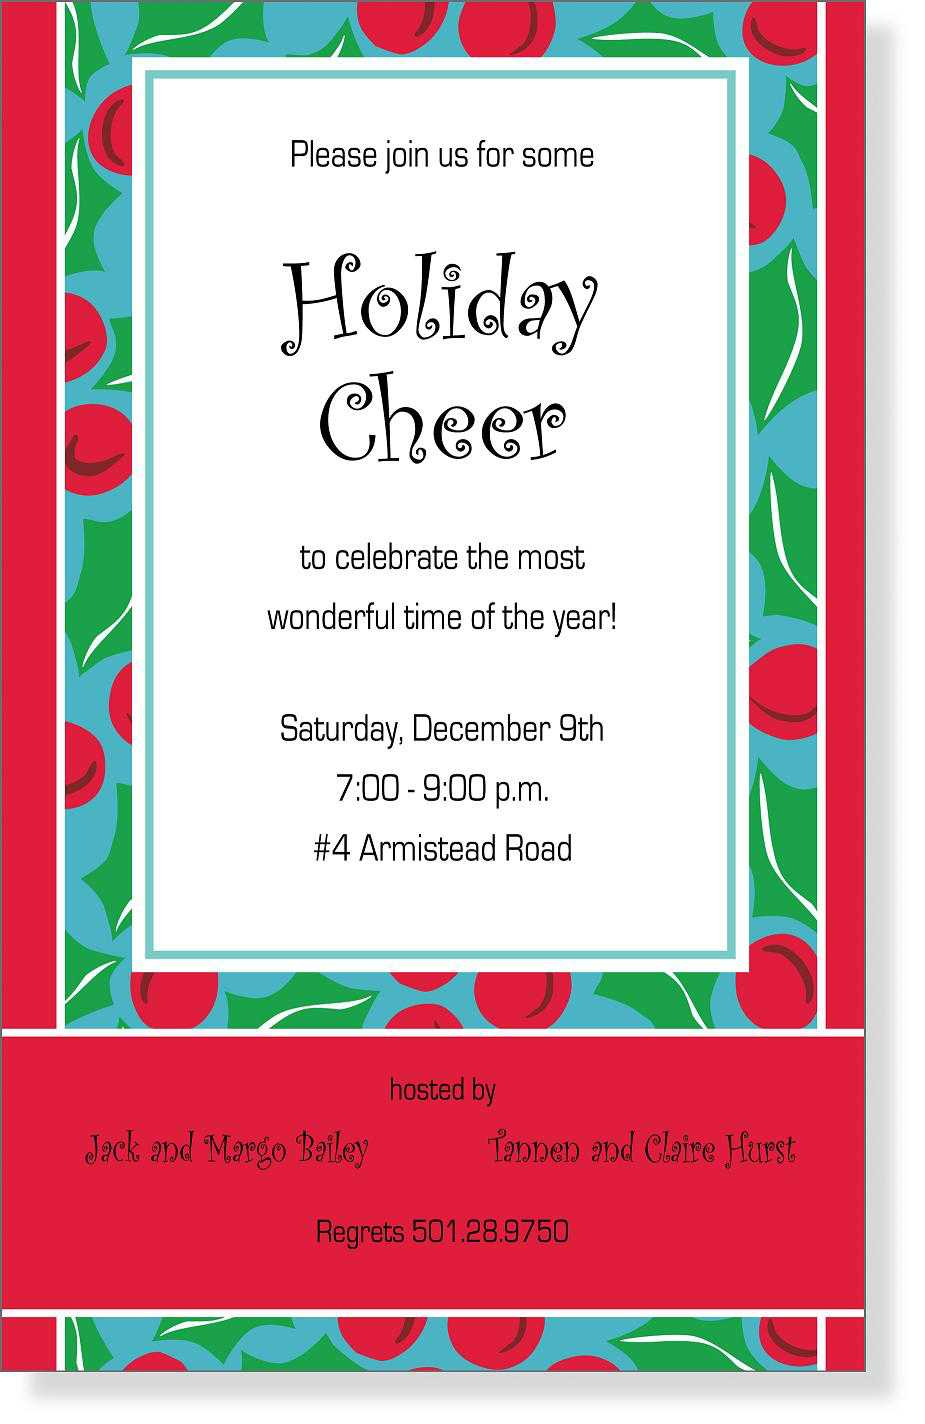 Charming Funny Christmas Party Invitation Wording Ideas Part - 11: ... Funny Christmas Party Invitation Wording Ideas